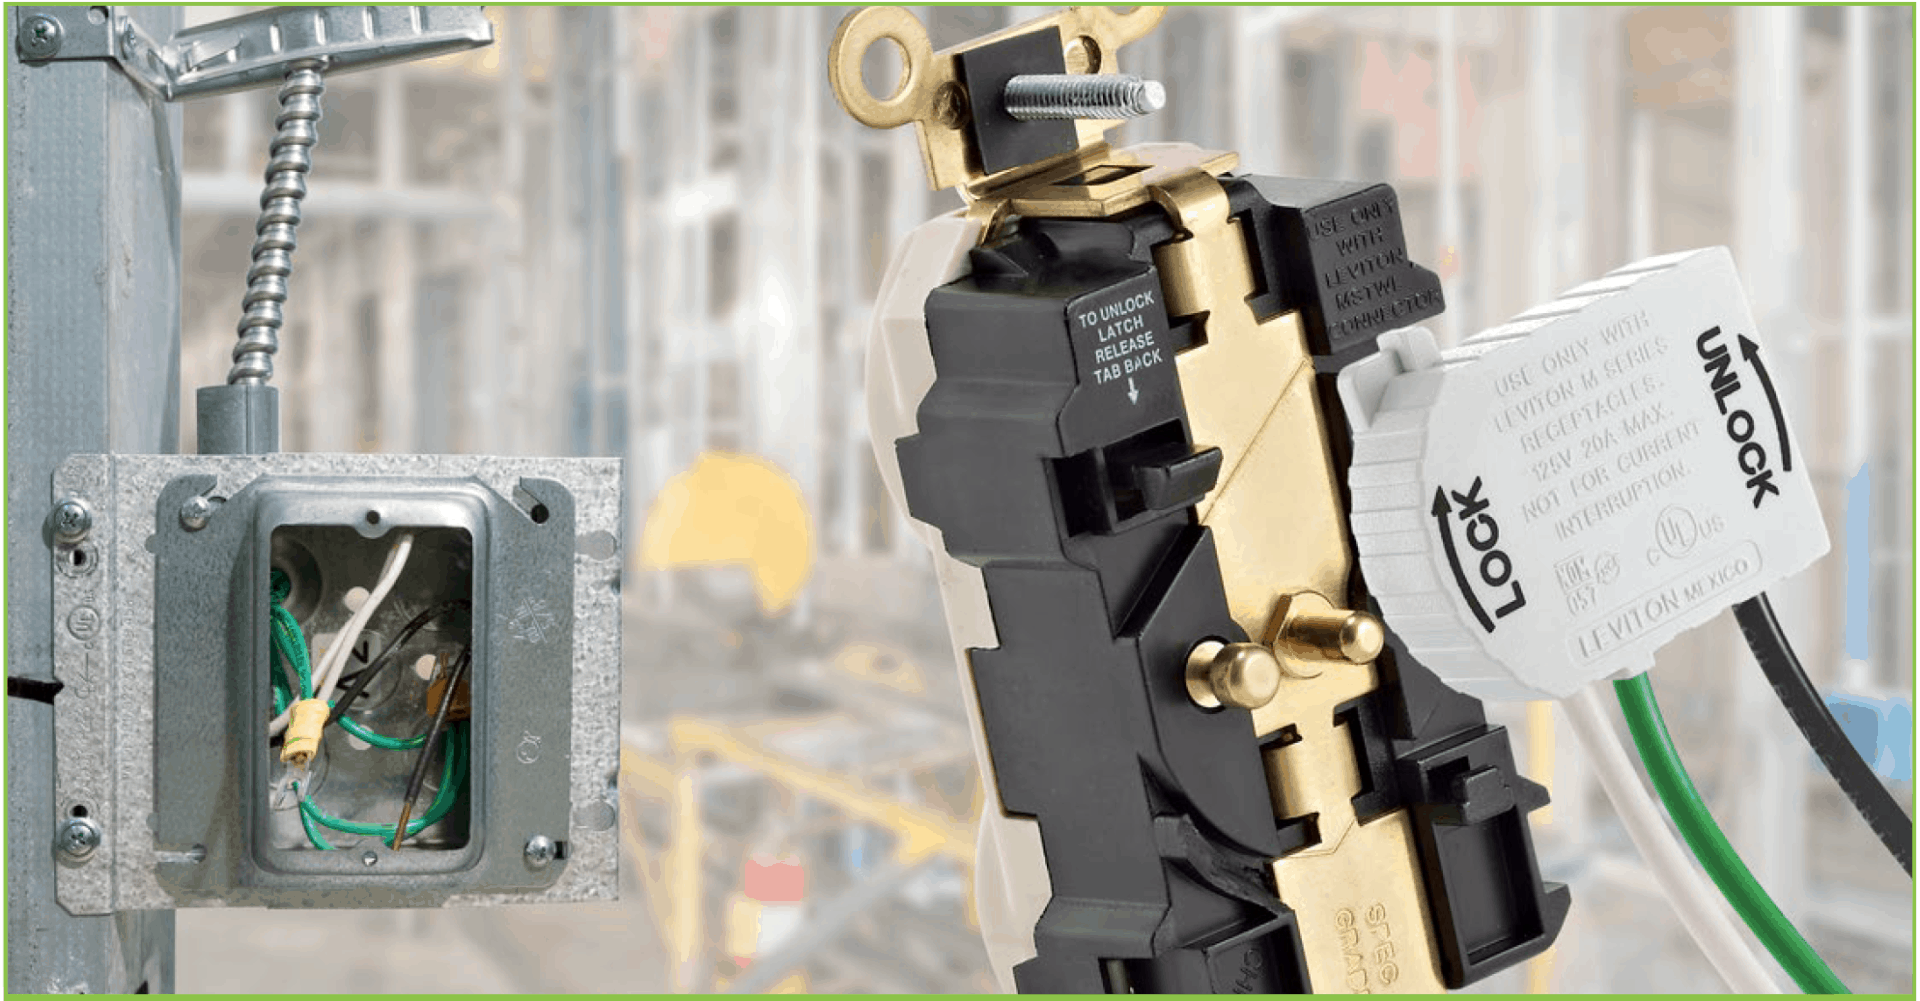 Leviton Lev-Lok modular wiring system with pigtail/whip and receptacle